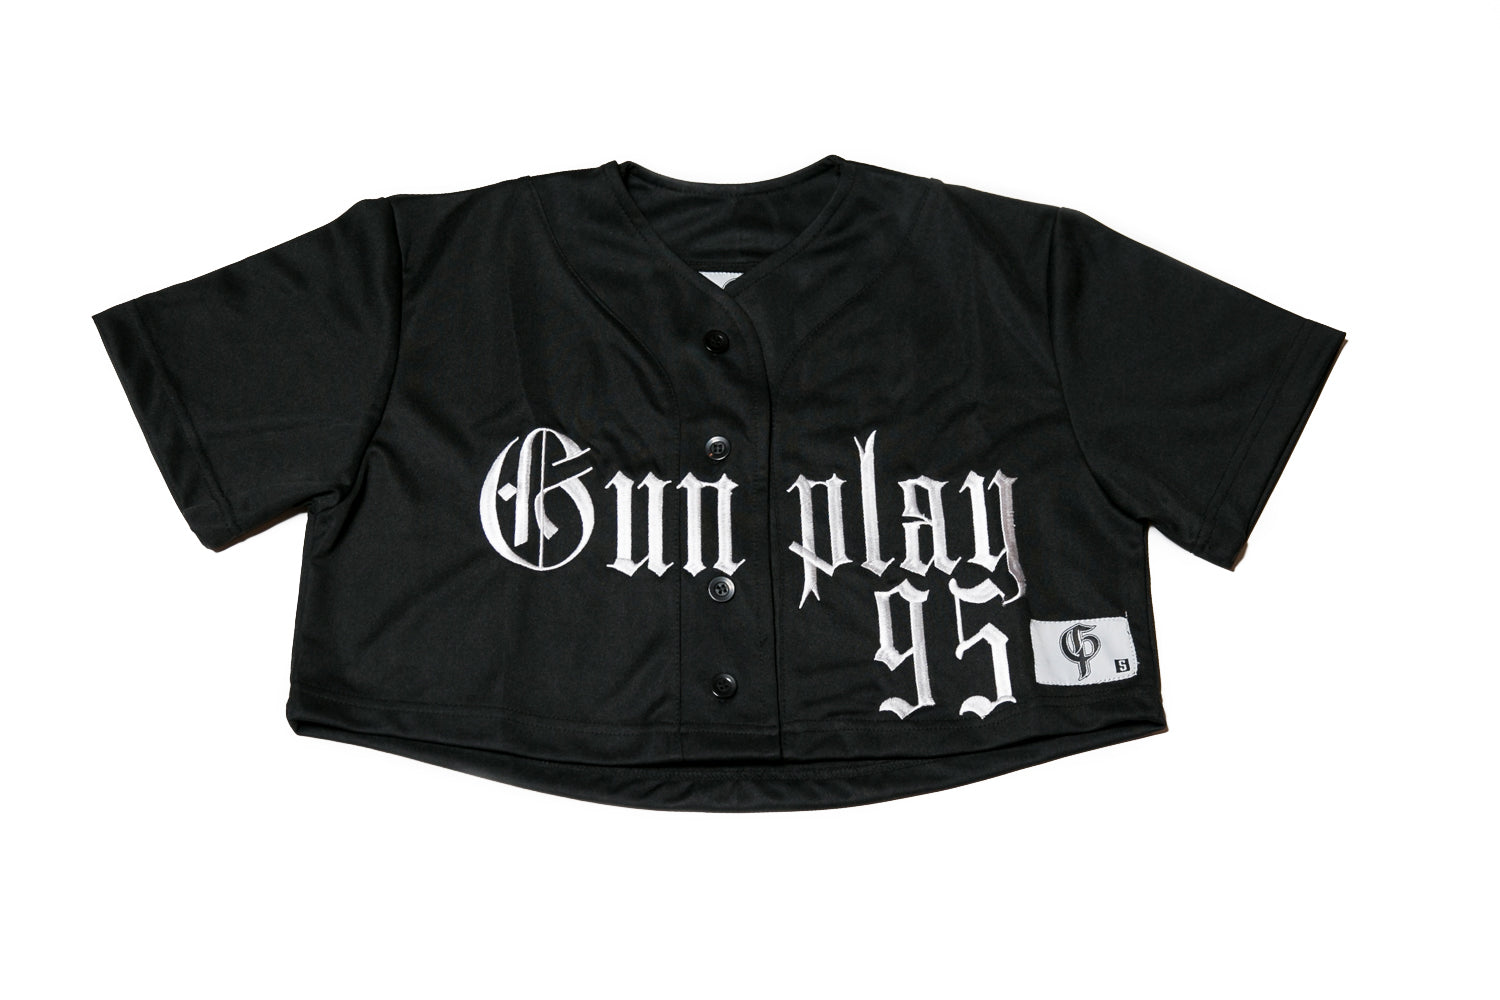 GunPlay 95 Cropped Jersey